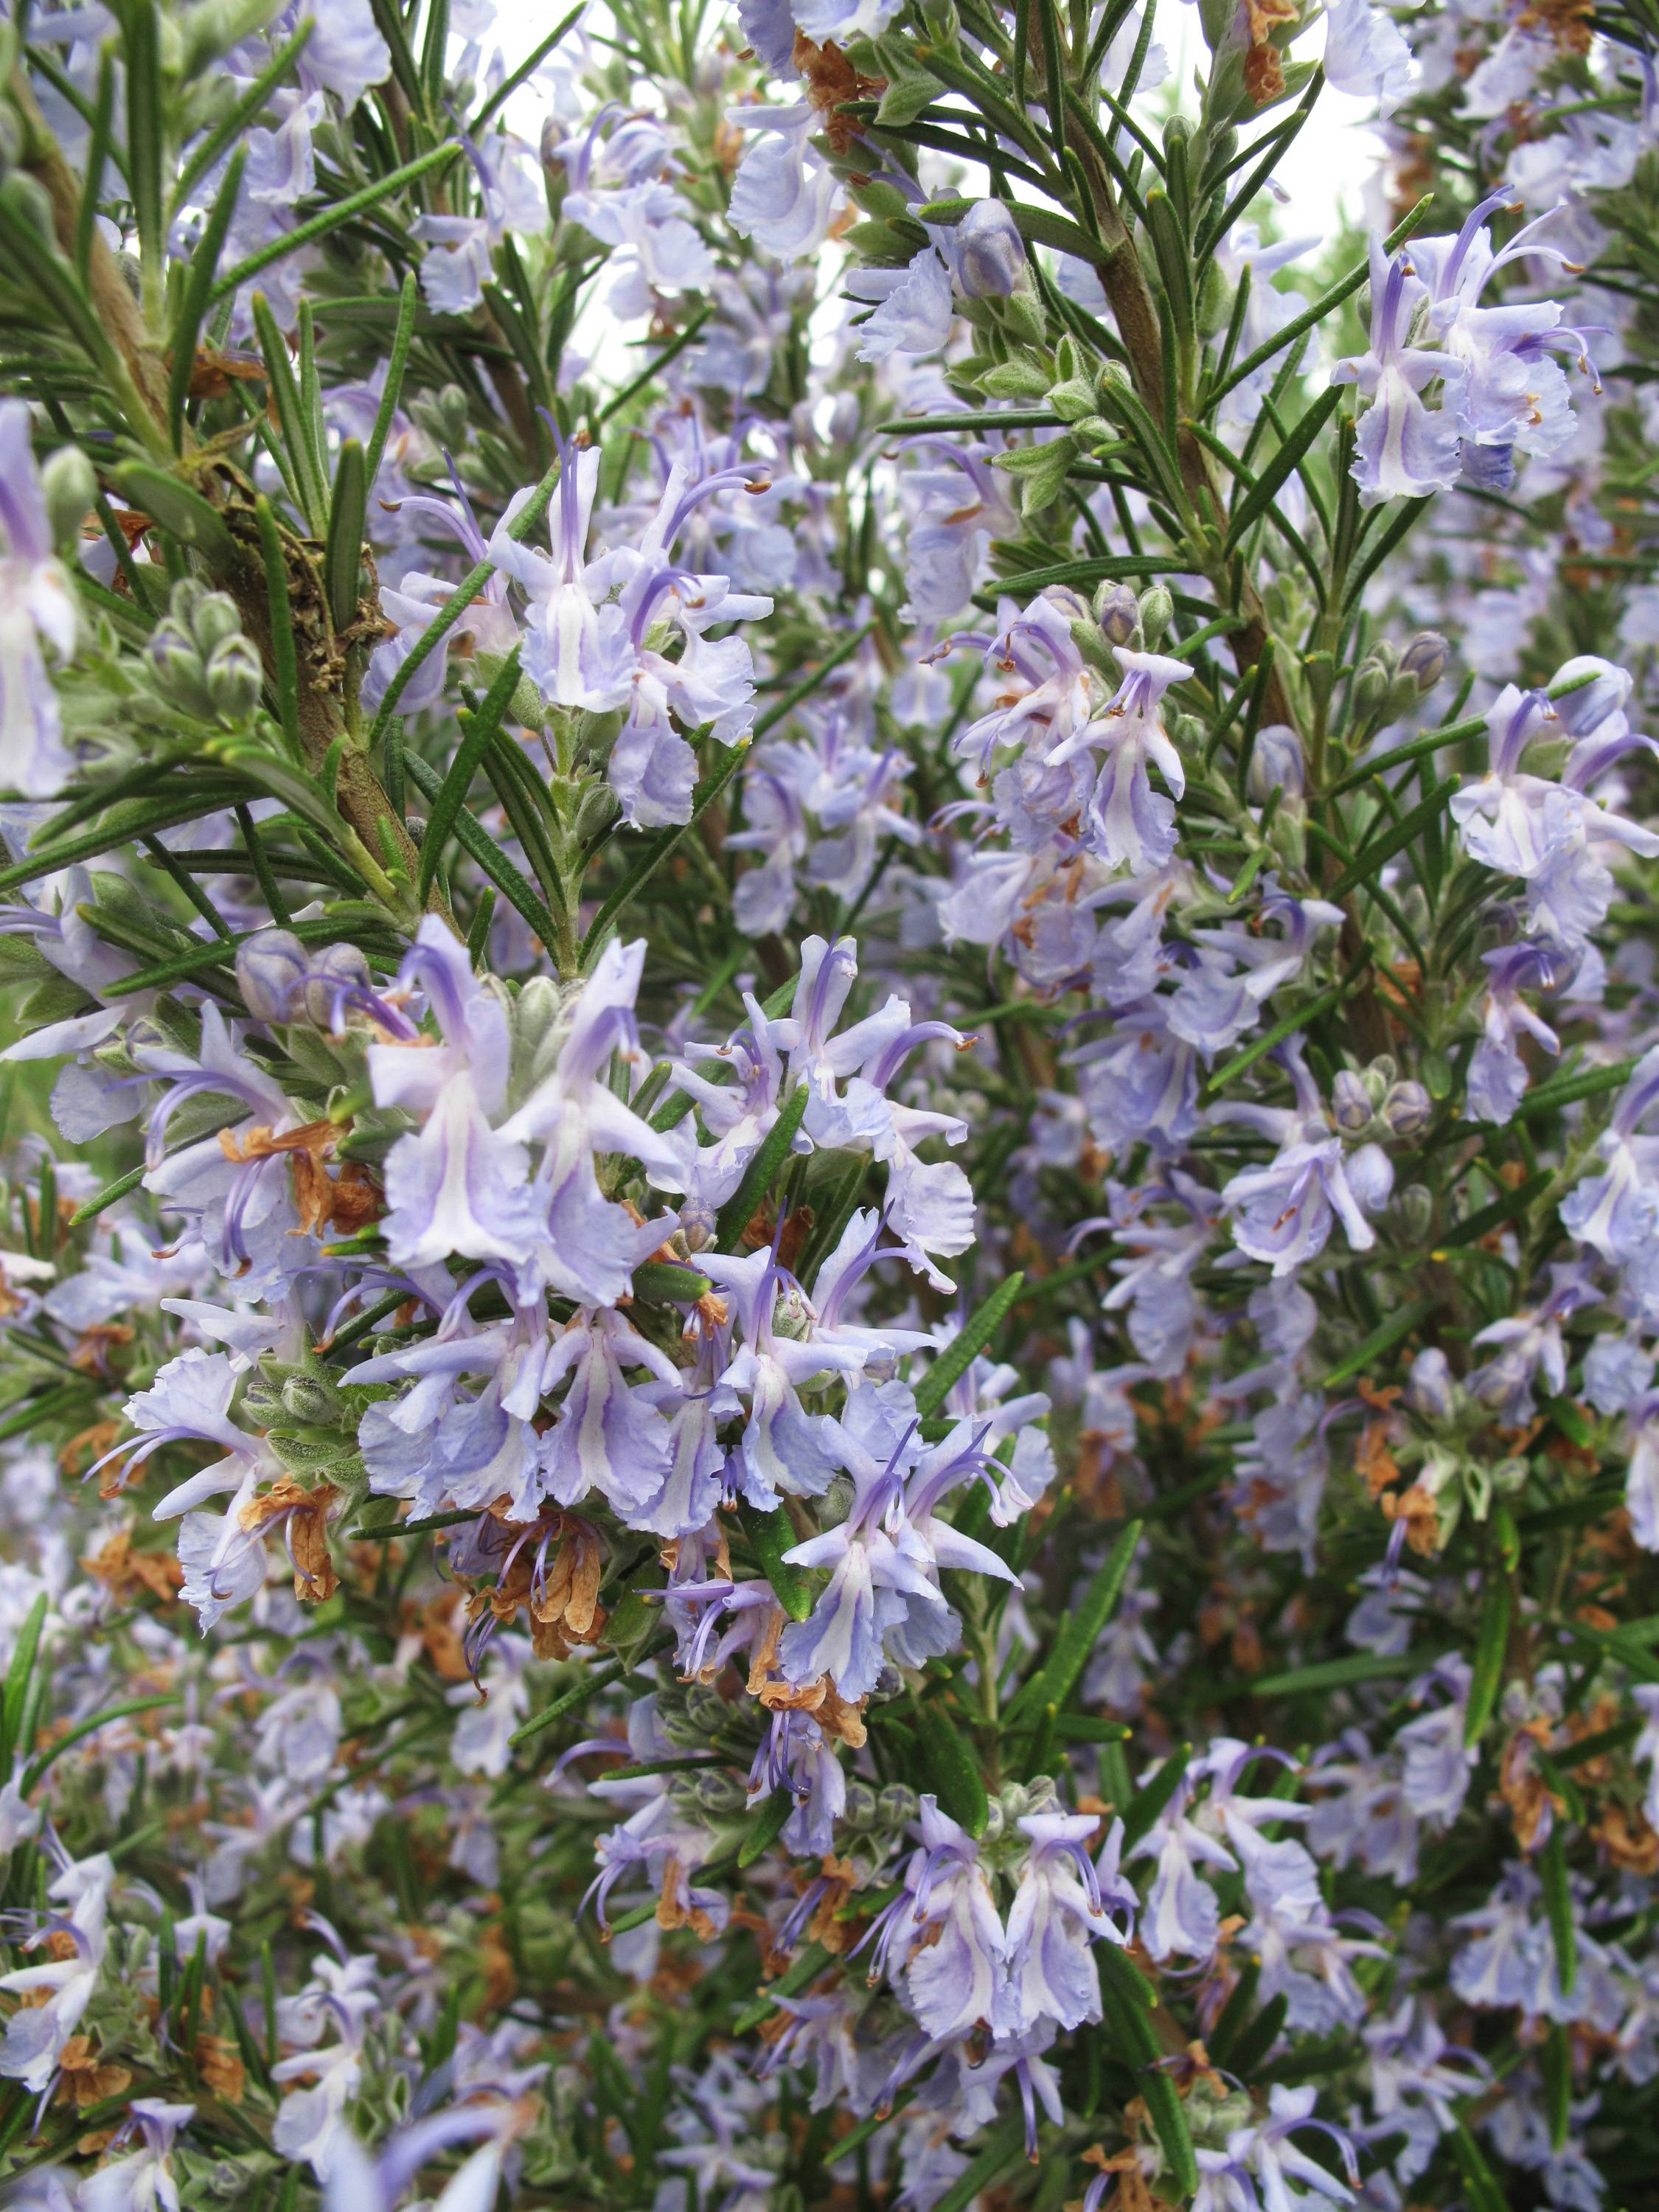 Many herbs, like Rosemary, are attractive to look at as well as to taste. You can use them as a garnish or fragrant centerpiece on the dining room table.